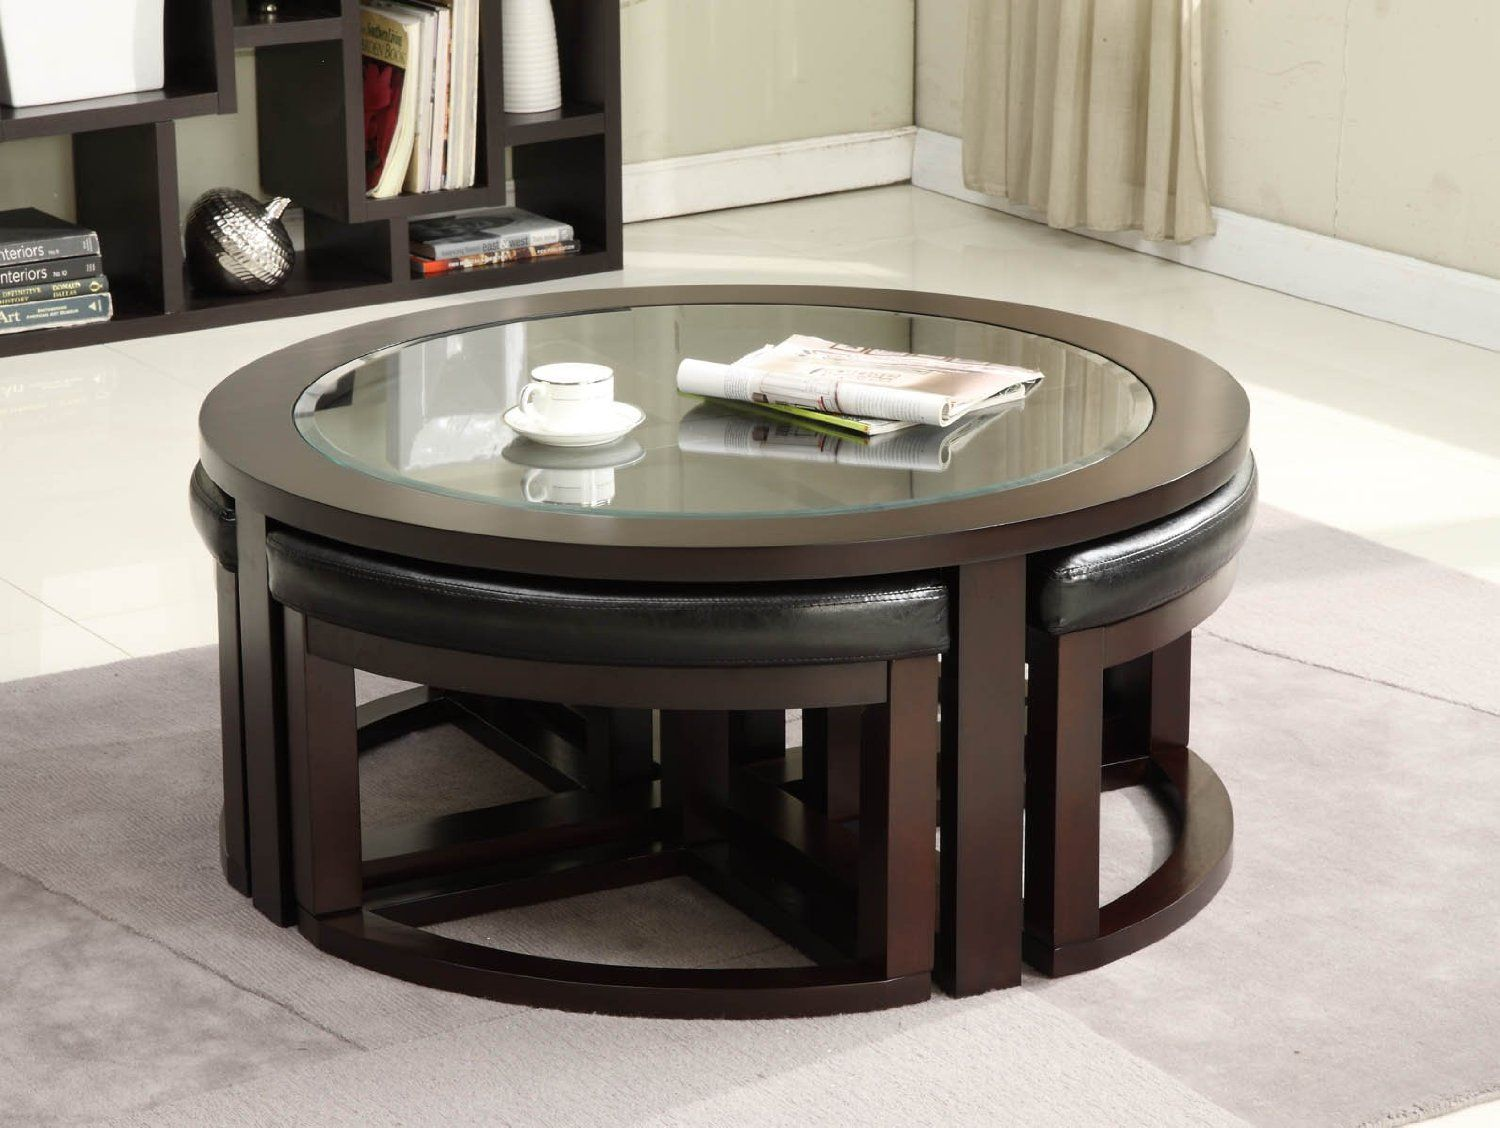 - Round Coffee Table With 4 Wedge Stools Coffee Table With Seating